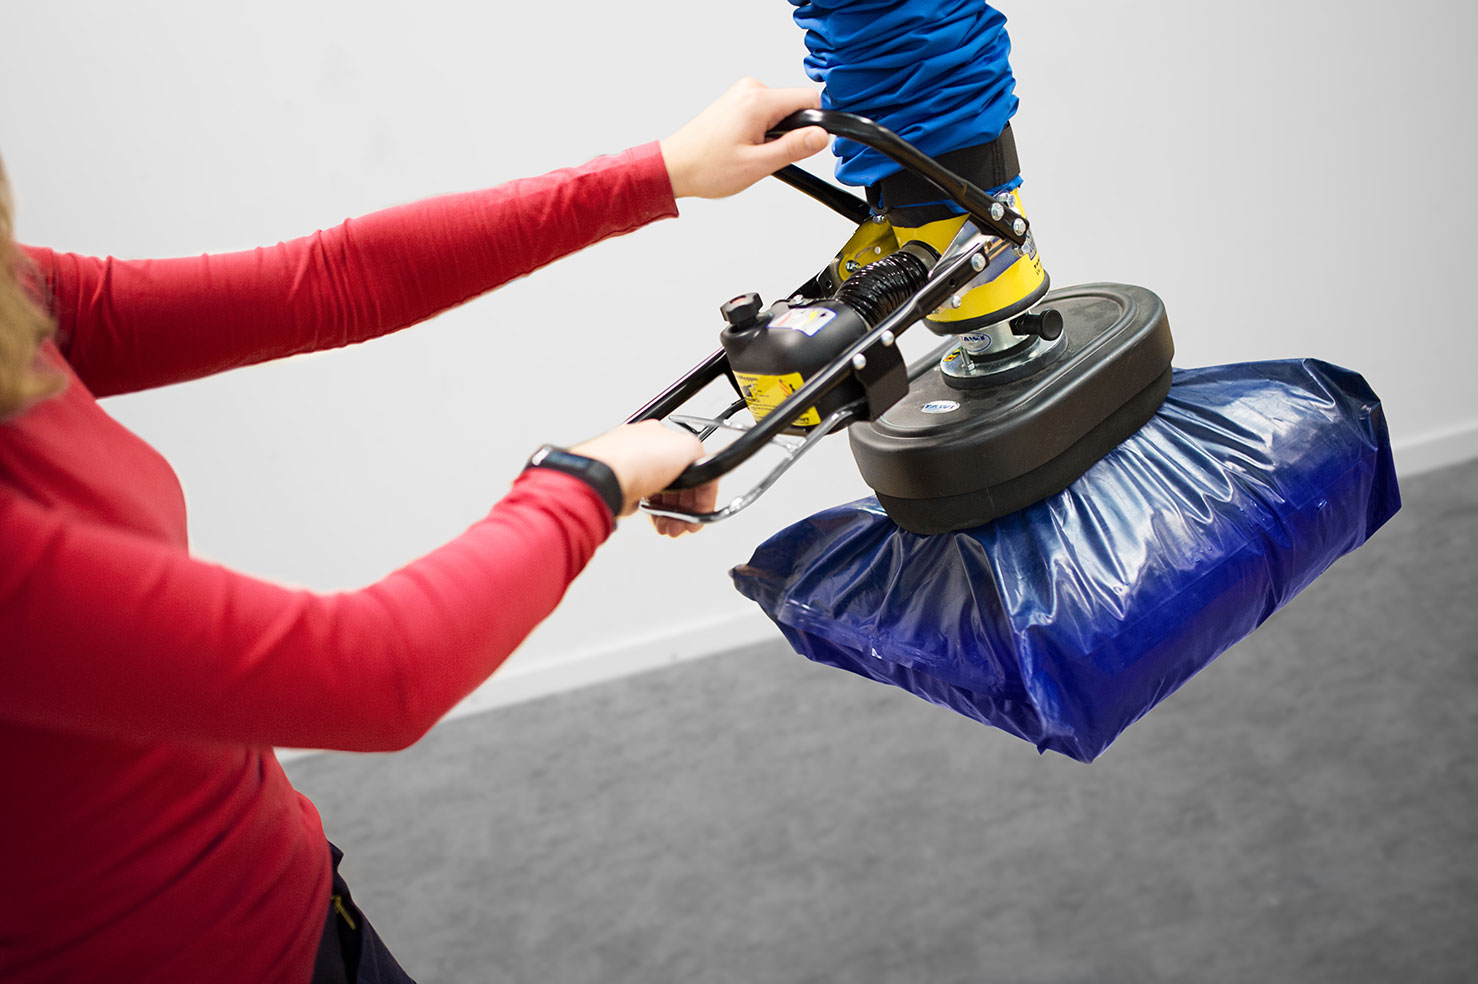 lifting plastic sack with handheld vacuum lifter